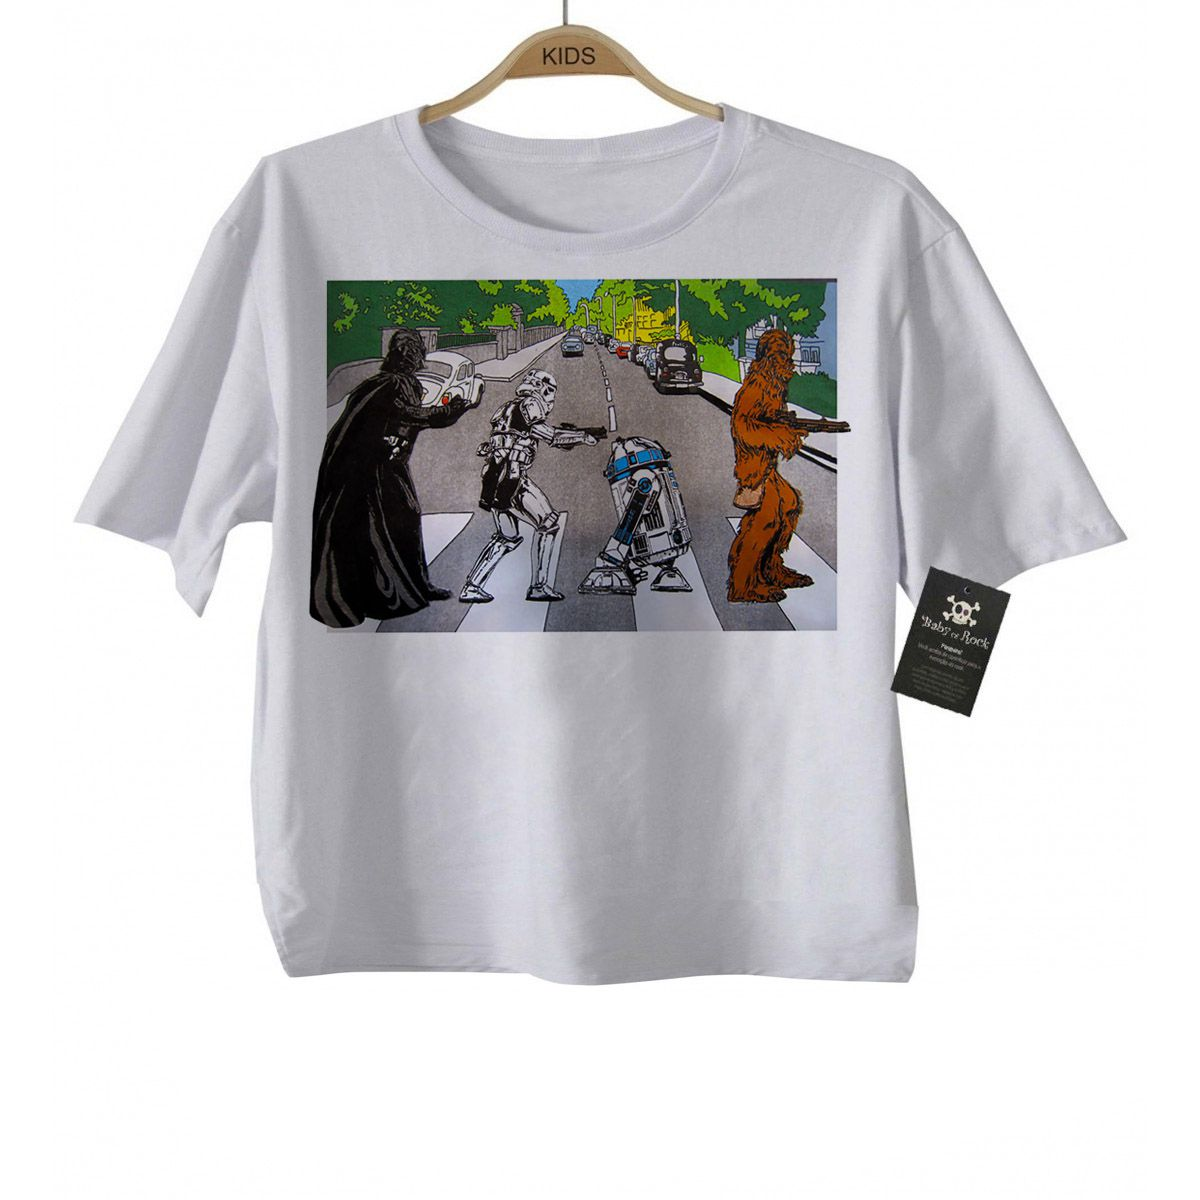 Camiseta Infantil  ROck Beatles Star Wars - White  - Baby Monster S/A